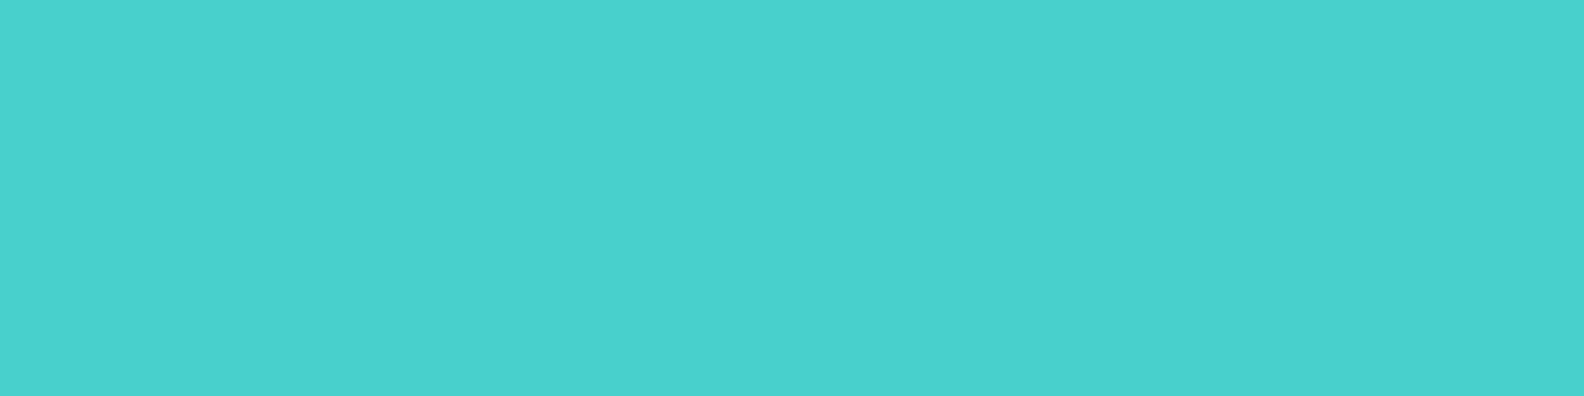 1584x396 Medium Turquoise Solid Color Background